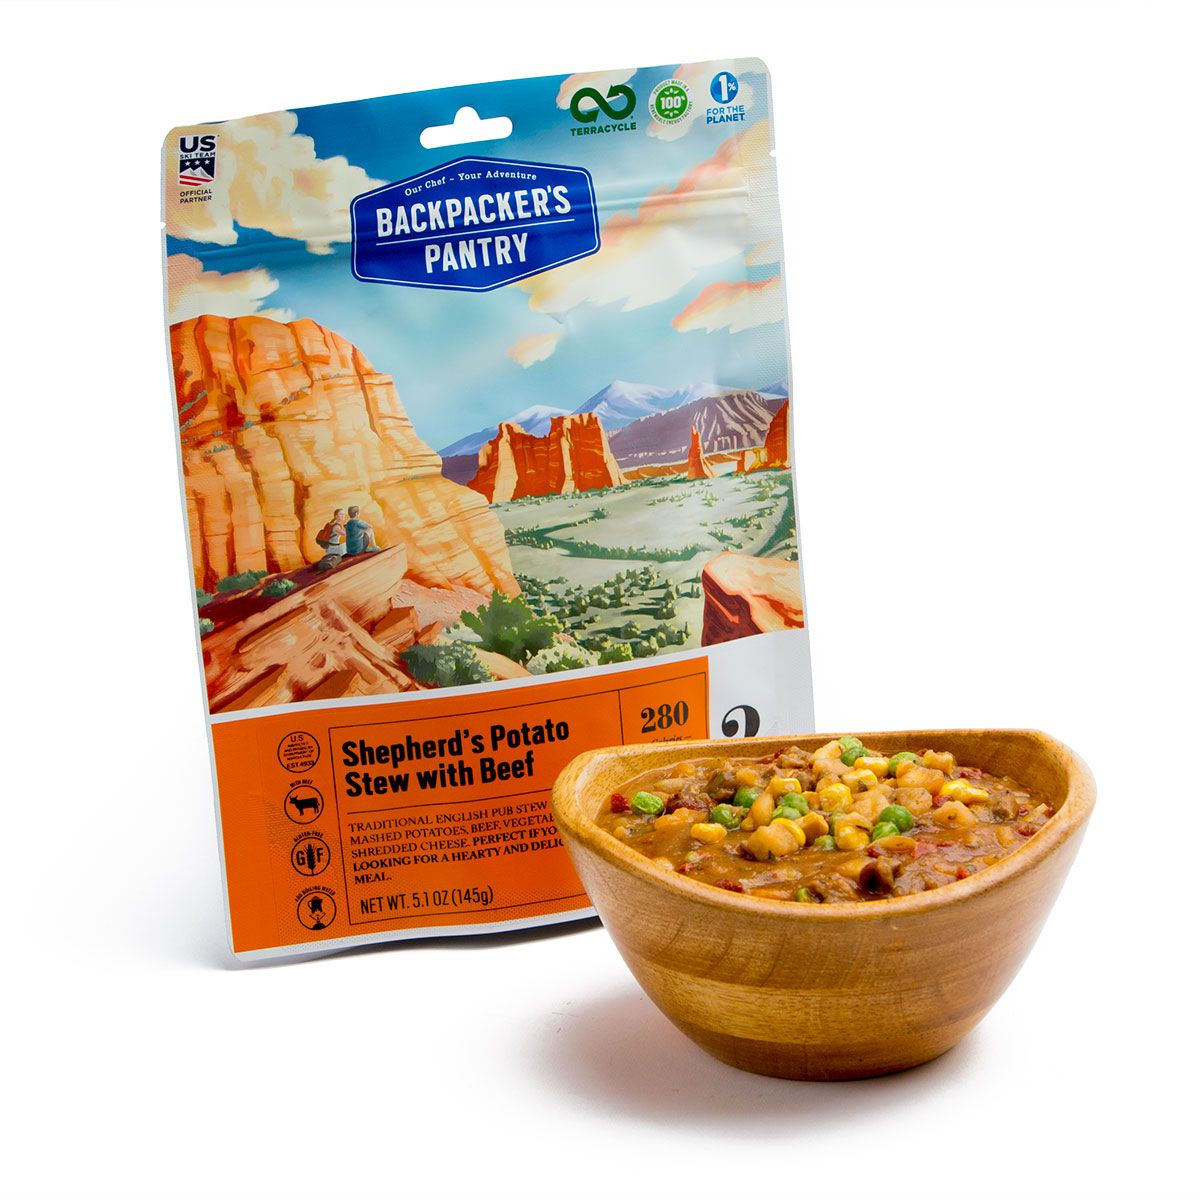 BP Shepherd's Potato Stew with Beef Pouch and bowl